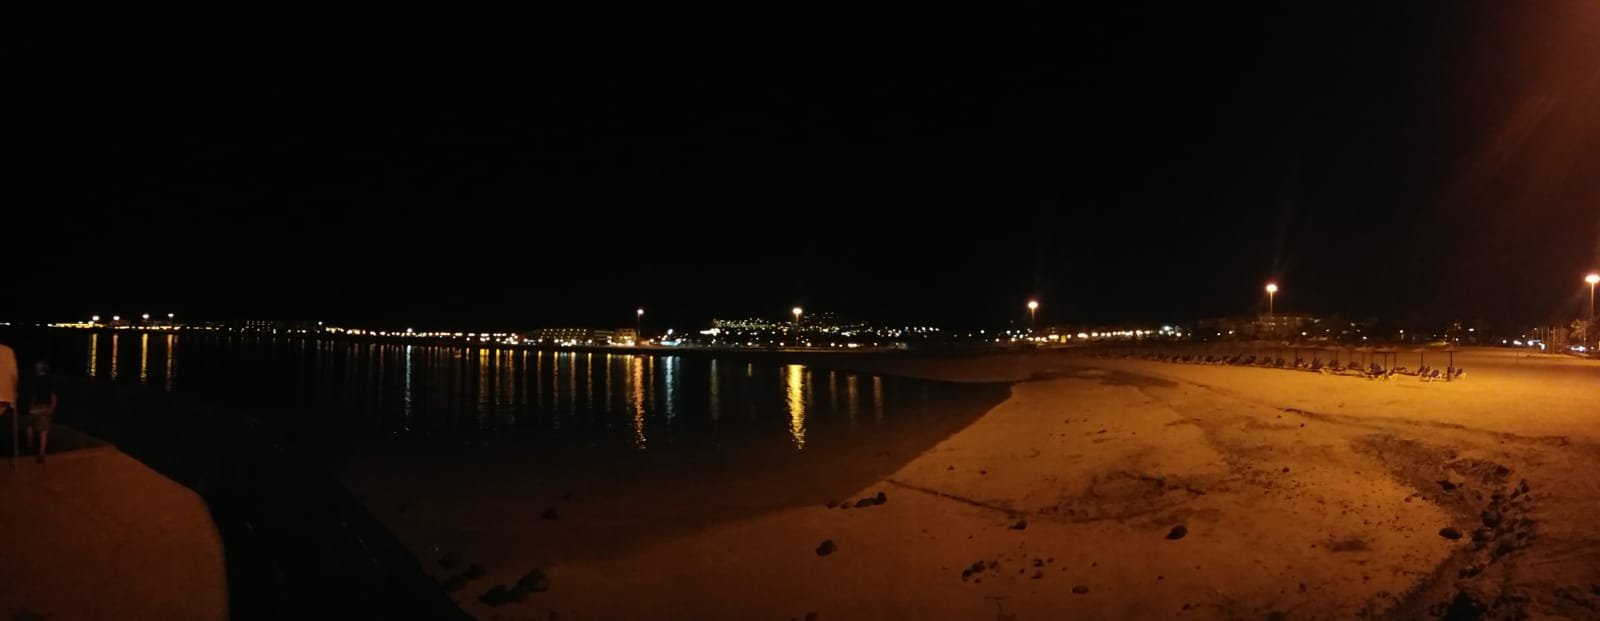 A night view over the beach from the entrance to the resort. You can see the beach that's well light, the dark water and the reflection of lights from other hotels around the other side of the bay.